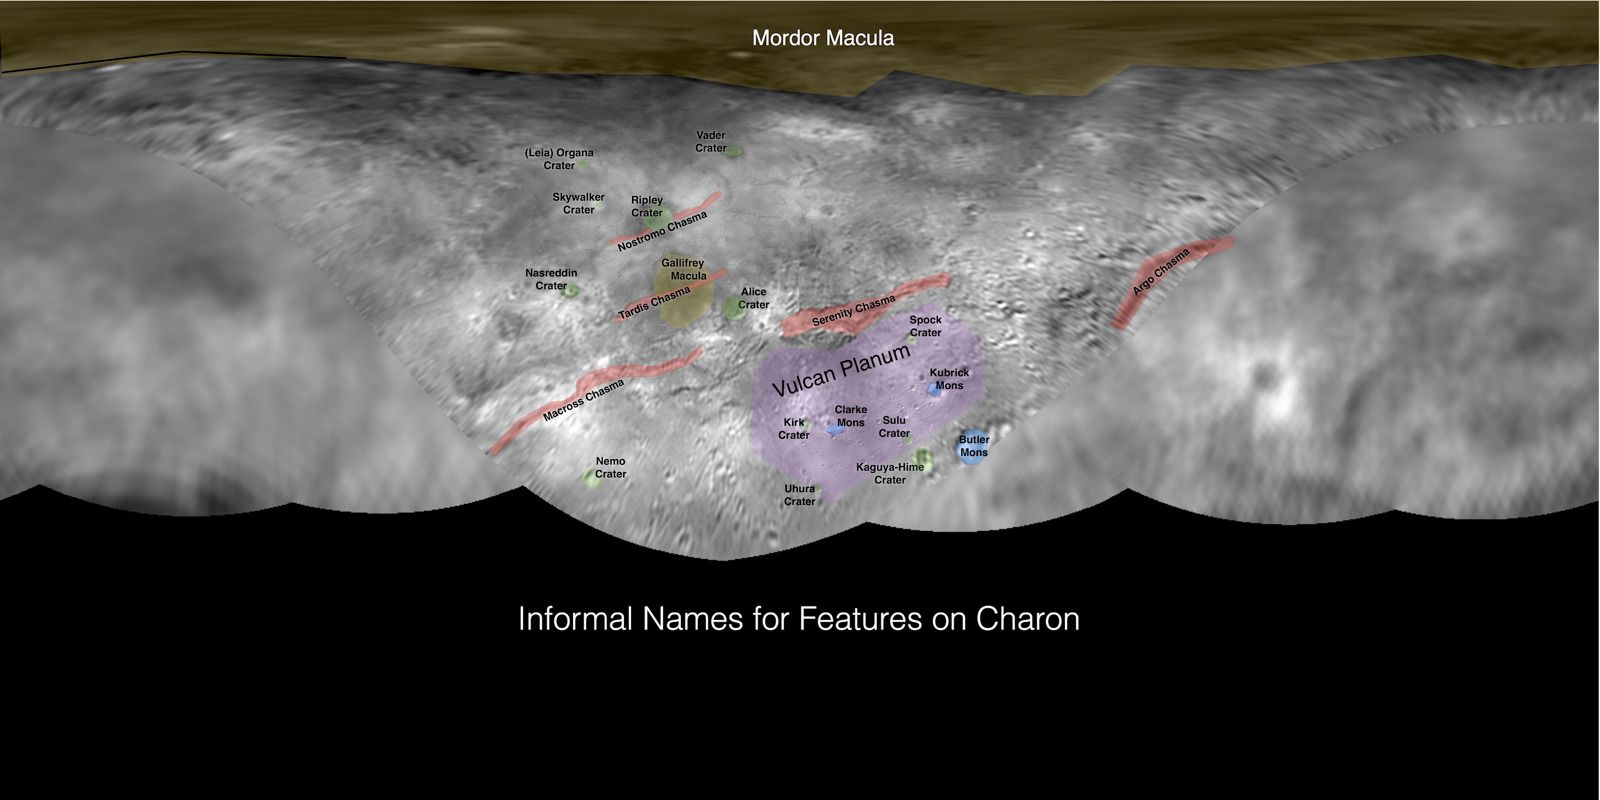 """The team behind NASA's New Horizons mission, which performed the first-ever Pluto flyby last month, has named some Charon craters after characters from the """"Star Wars"""" and """"Star Trek"""" franchises, including Darth Vader and Capt. James T. Kirk."""